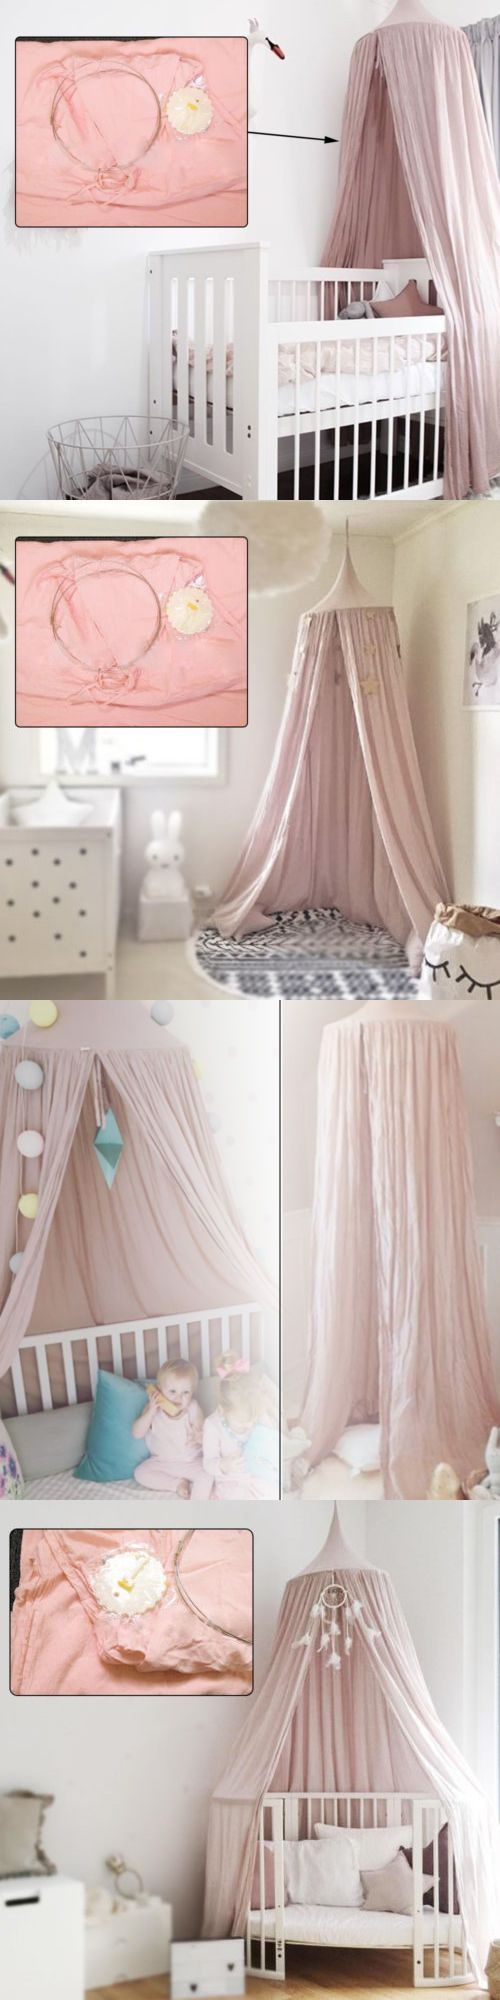 Canopies and Netting 48090: Kids Baby Bedding Round Dome Bed Canopy Netting Bedcover Mosquito Net Curtain -> BUY IT NOW ONLY: $31.69 on eBay!